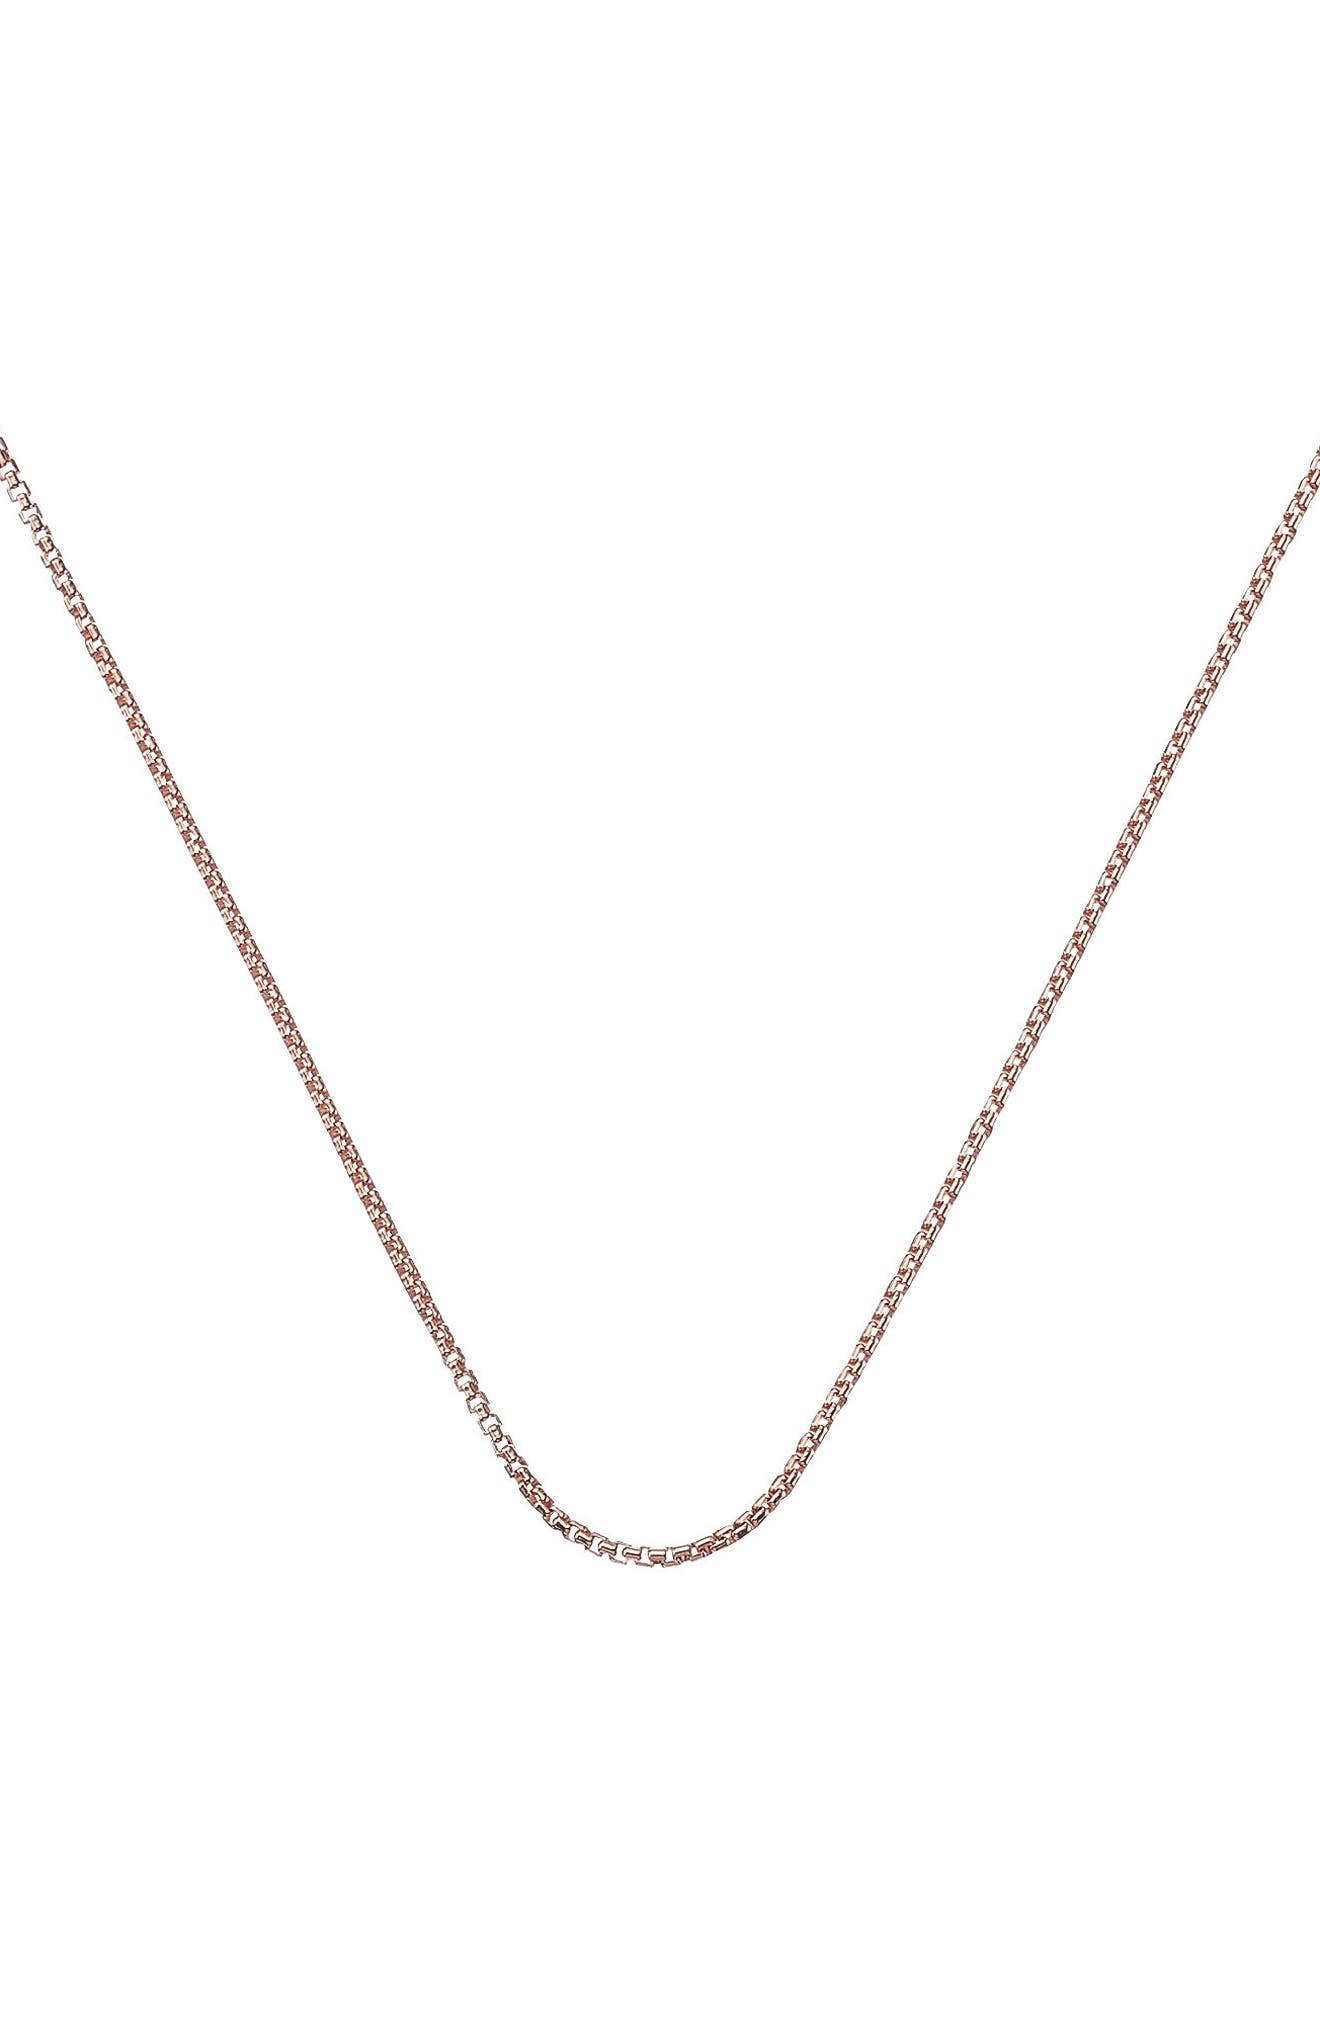 18-Inch Box Chain,                             Main thumbnail 1, color,                             Rose Gold